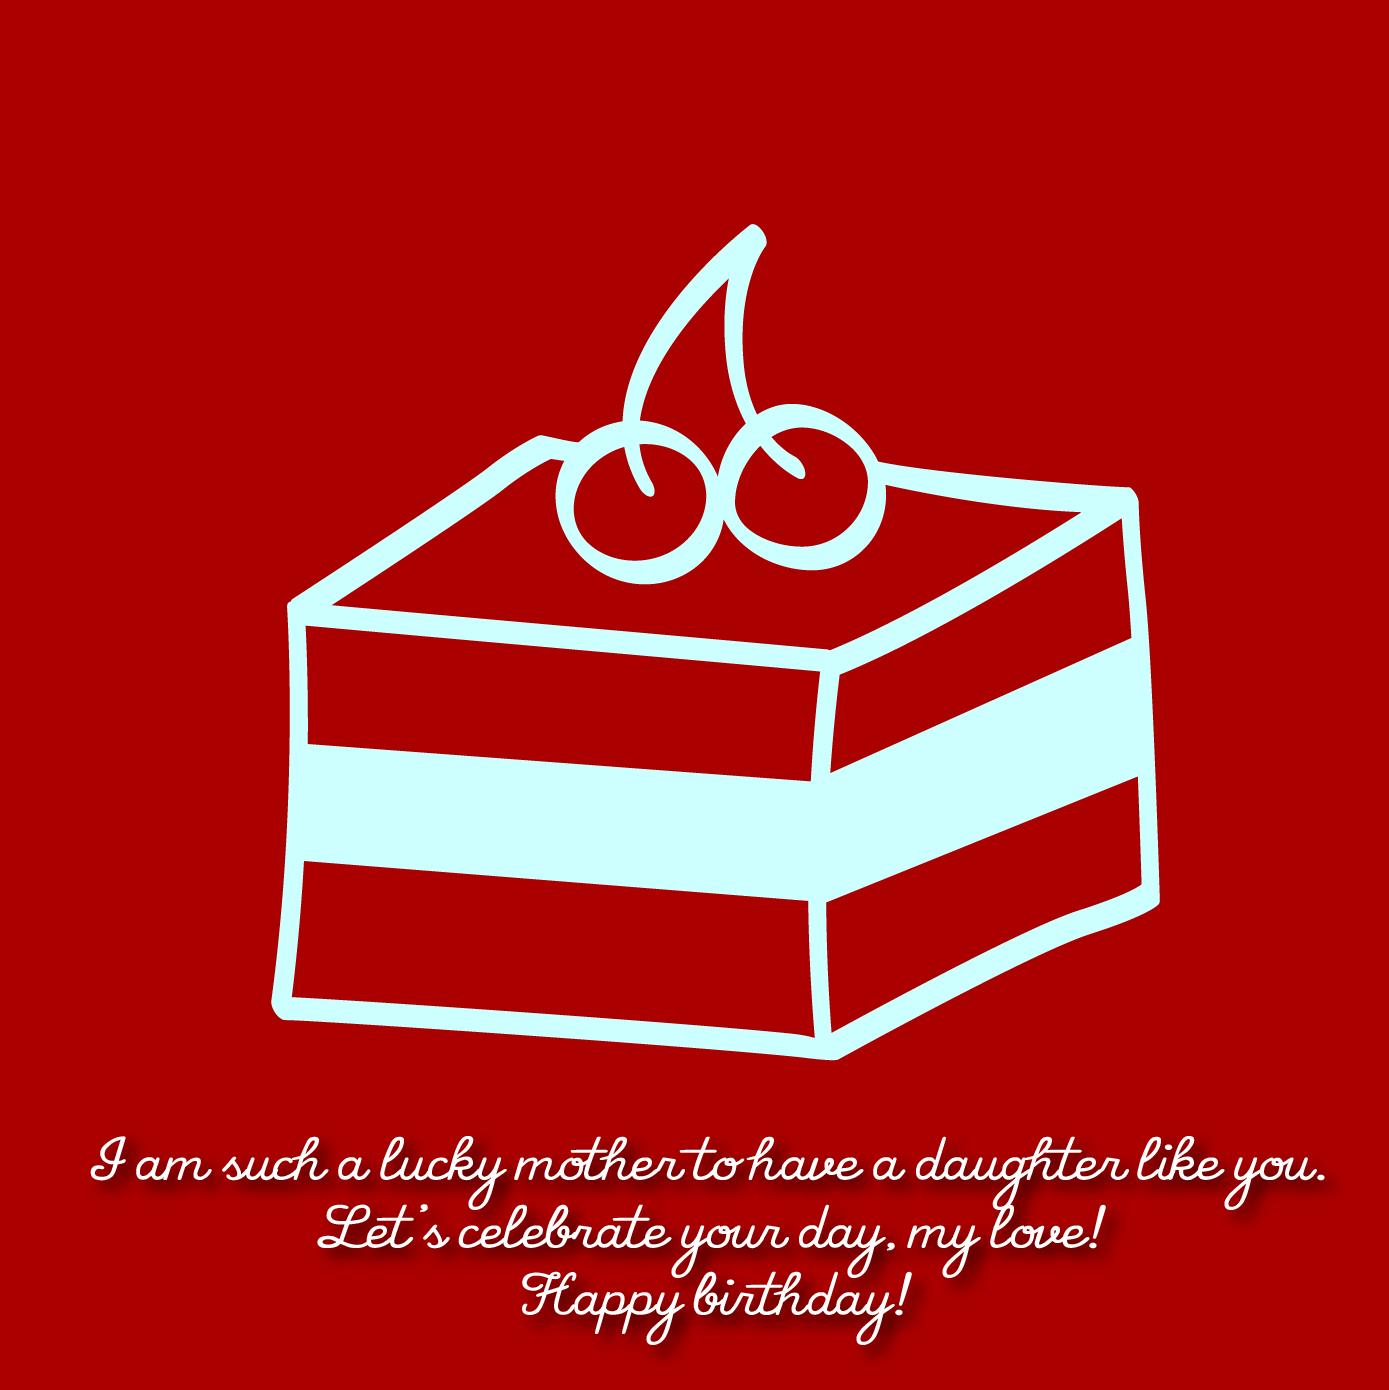 birthday-wishes-for-daughter-from-mom-07